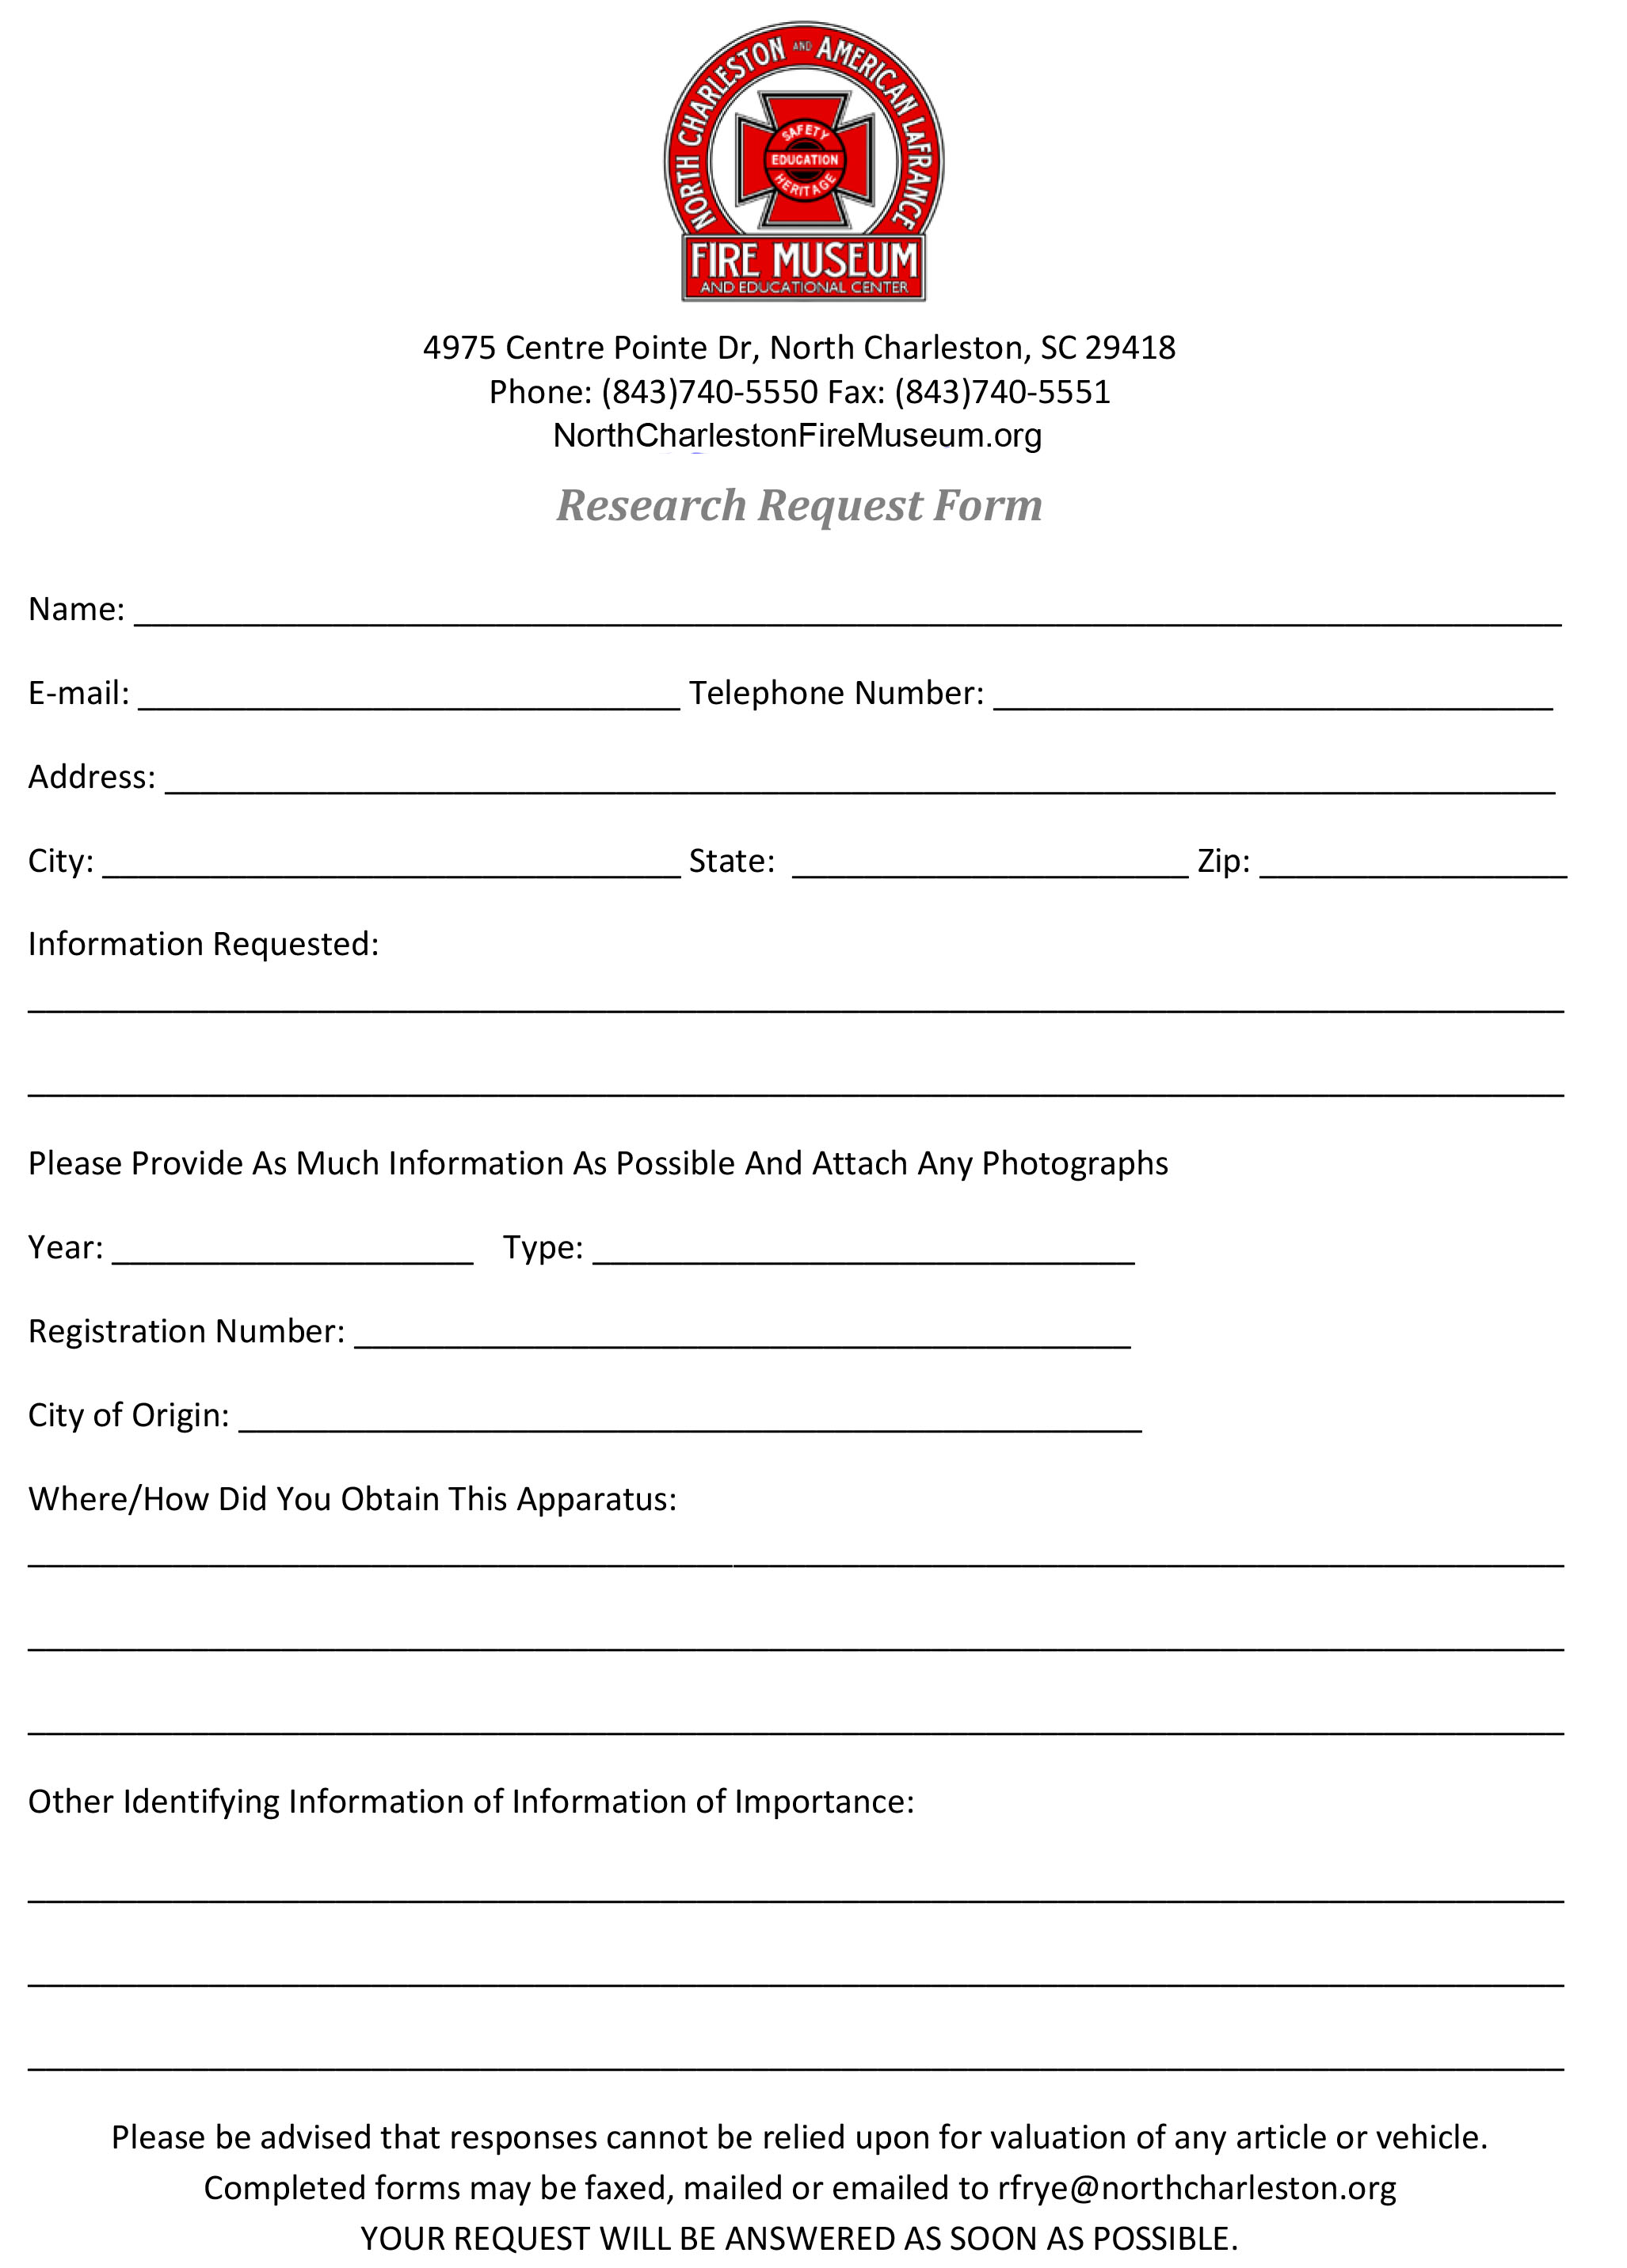 North Charleston Fire Museum Research – Information Request Form